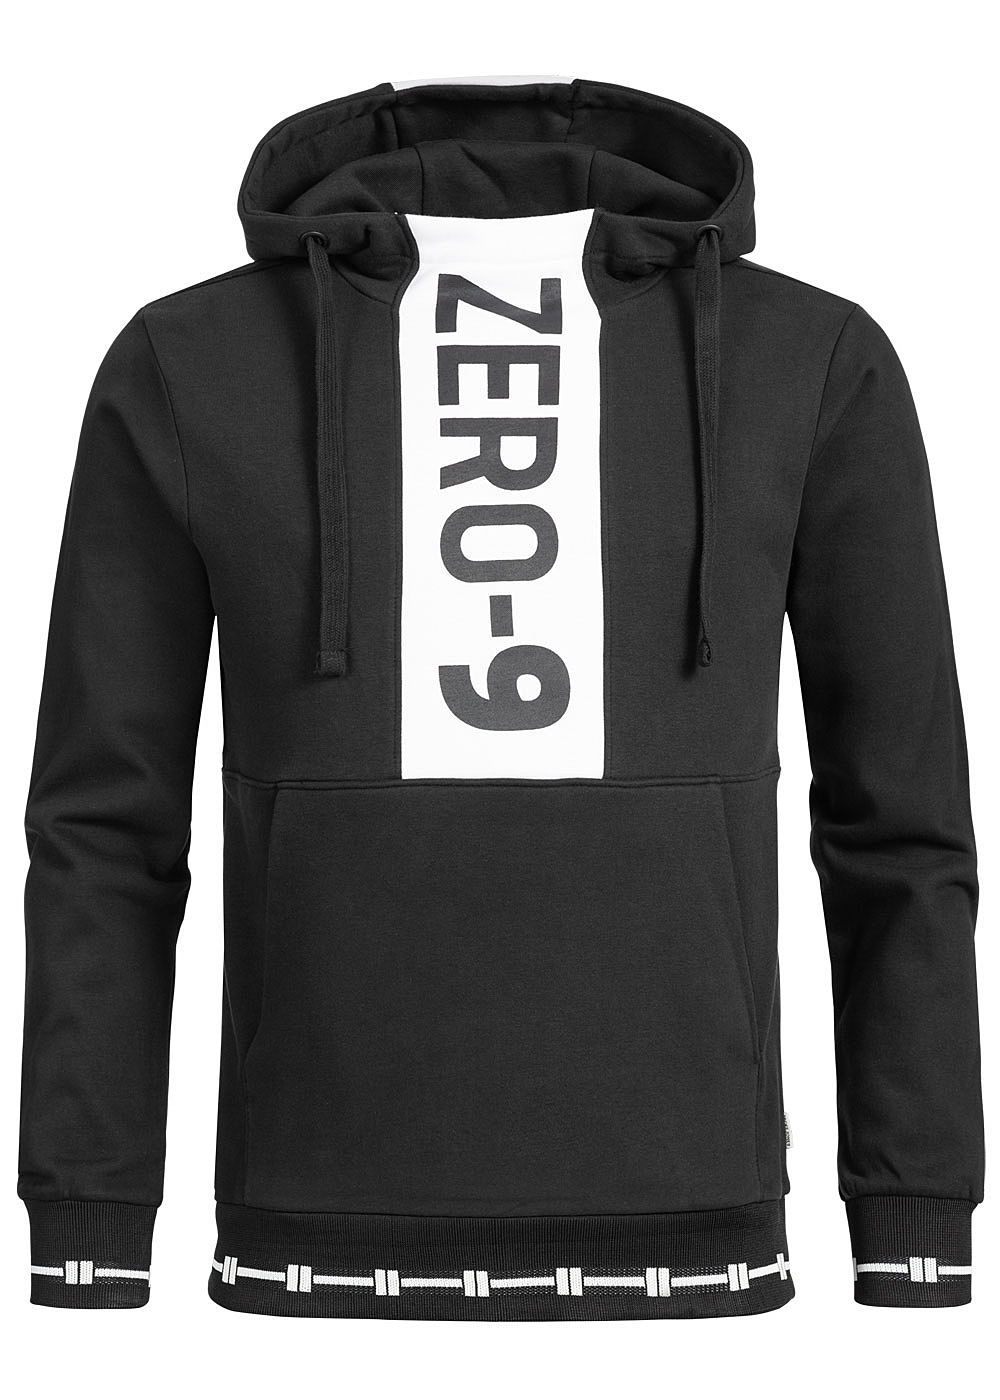 Jack and Jones Herren Sweat Hoodie Zer0-9 Print schwarz weiss - Art.-Nr.: 19051920